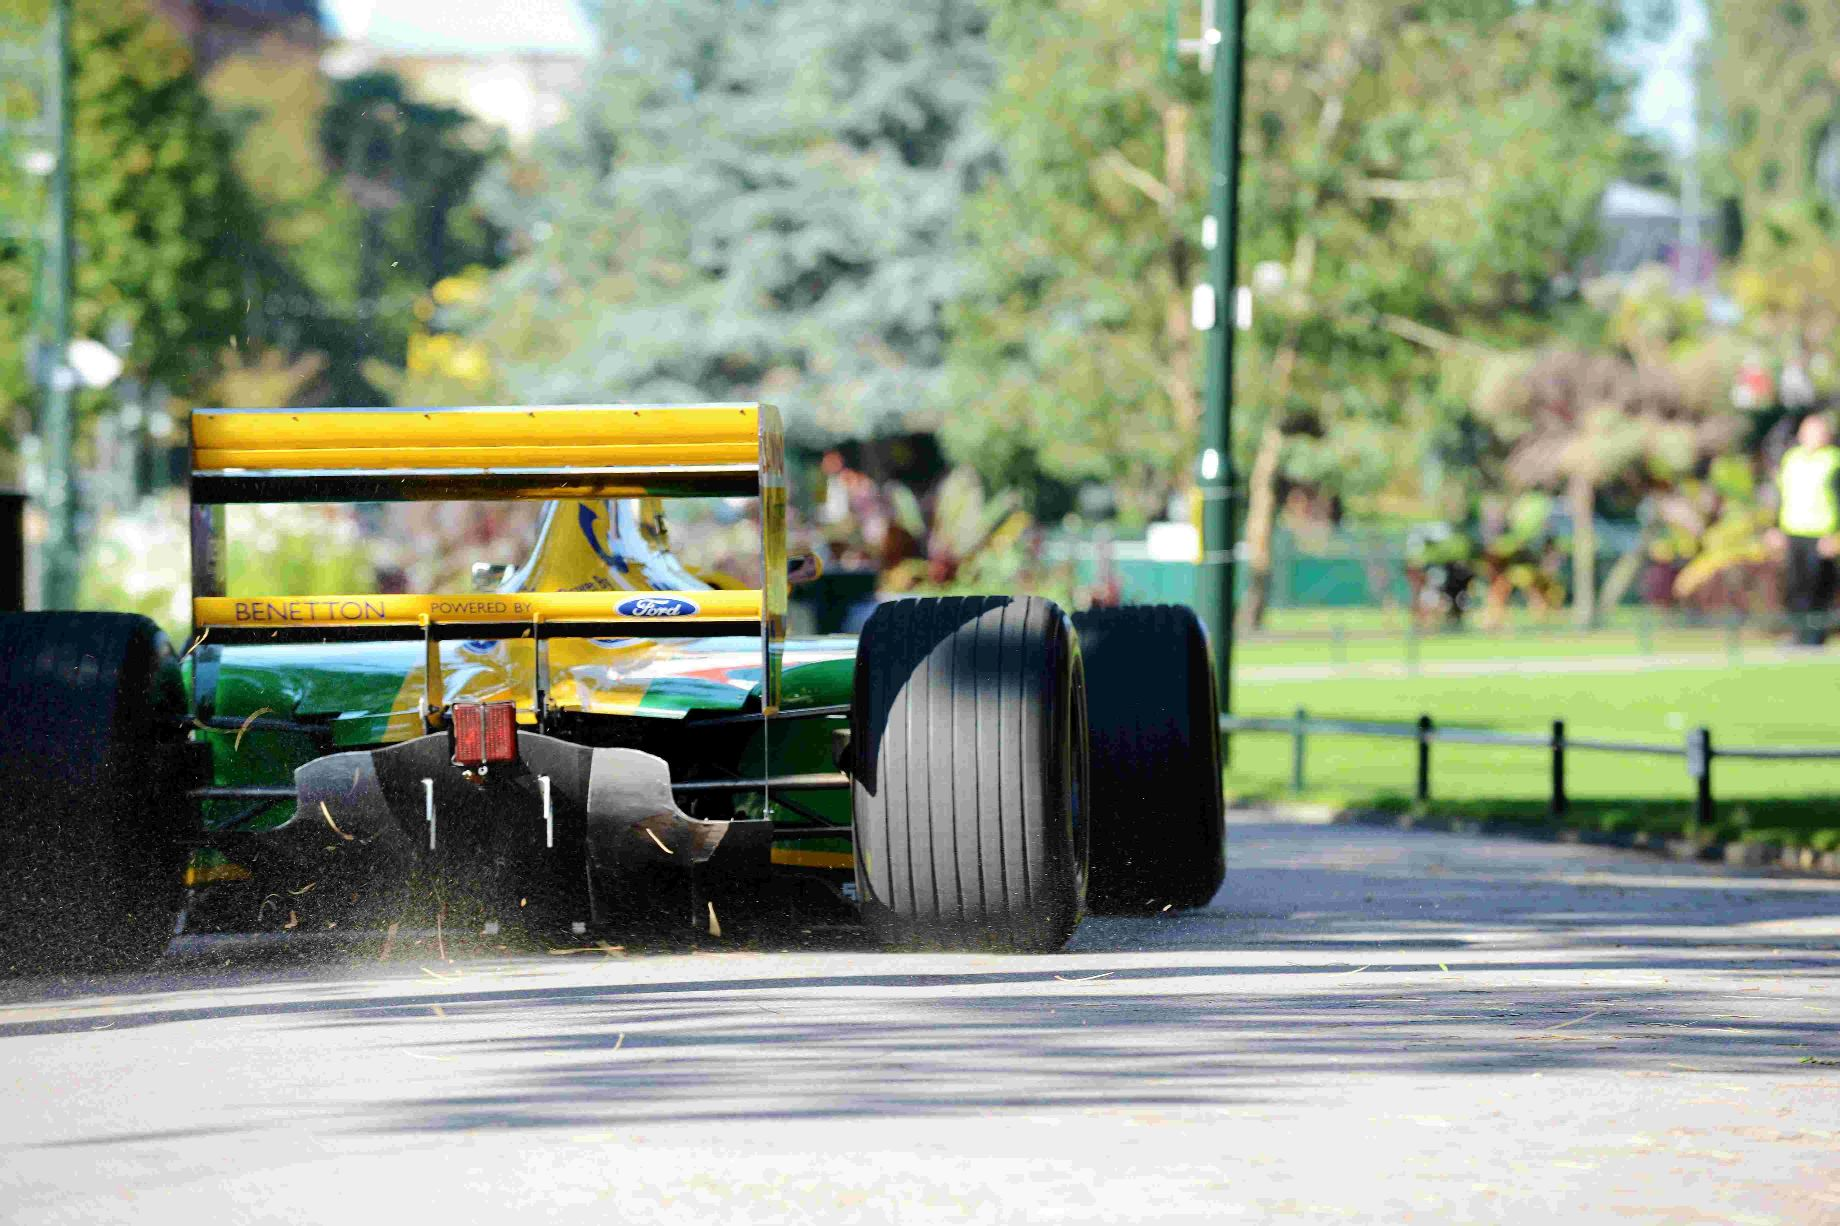 HIGH OCTANE: The  1992 Benetton Formula One car, driven by racing legend Michael Schumacher